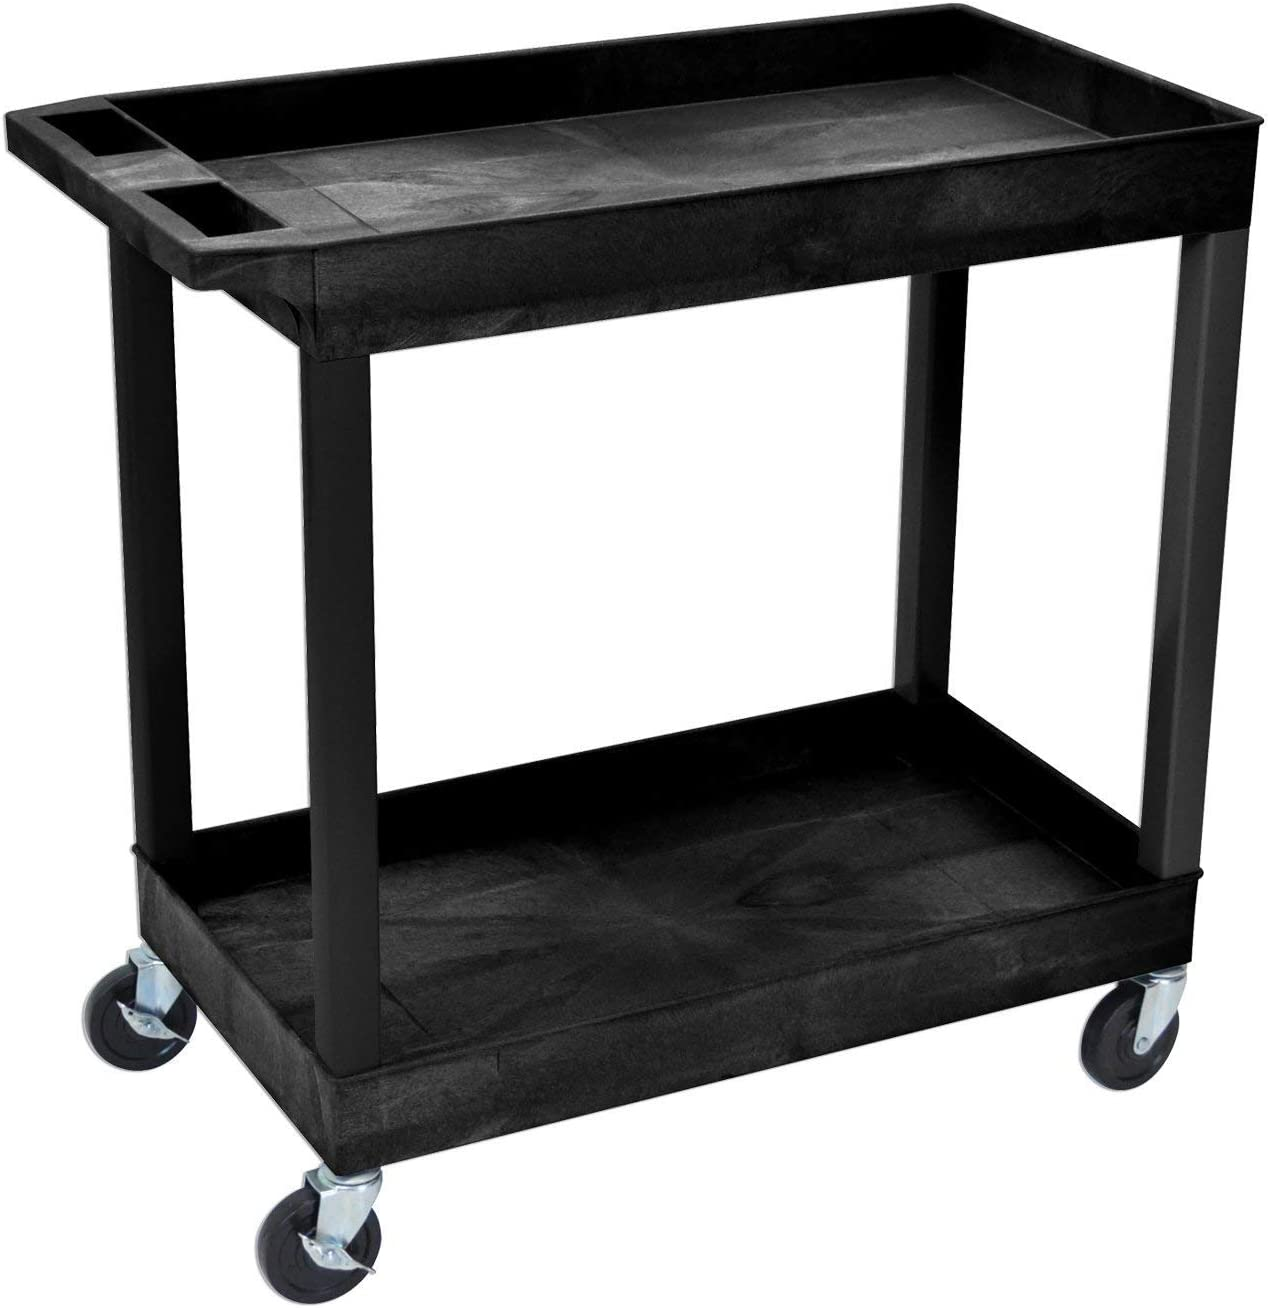 Offex 18 x 32 Inch Heavy Duty Utility Tub Cart with 2 Shelves, Black